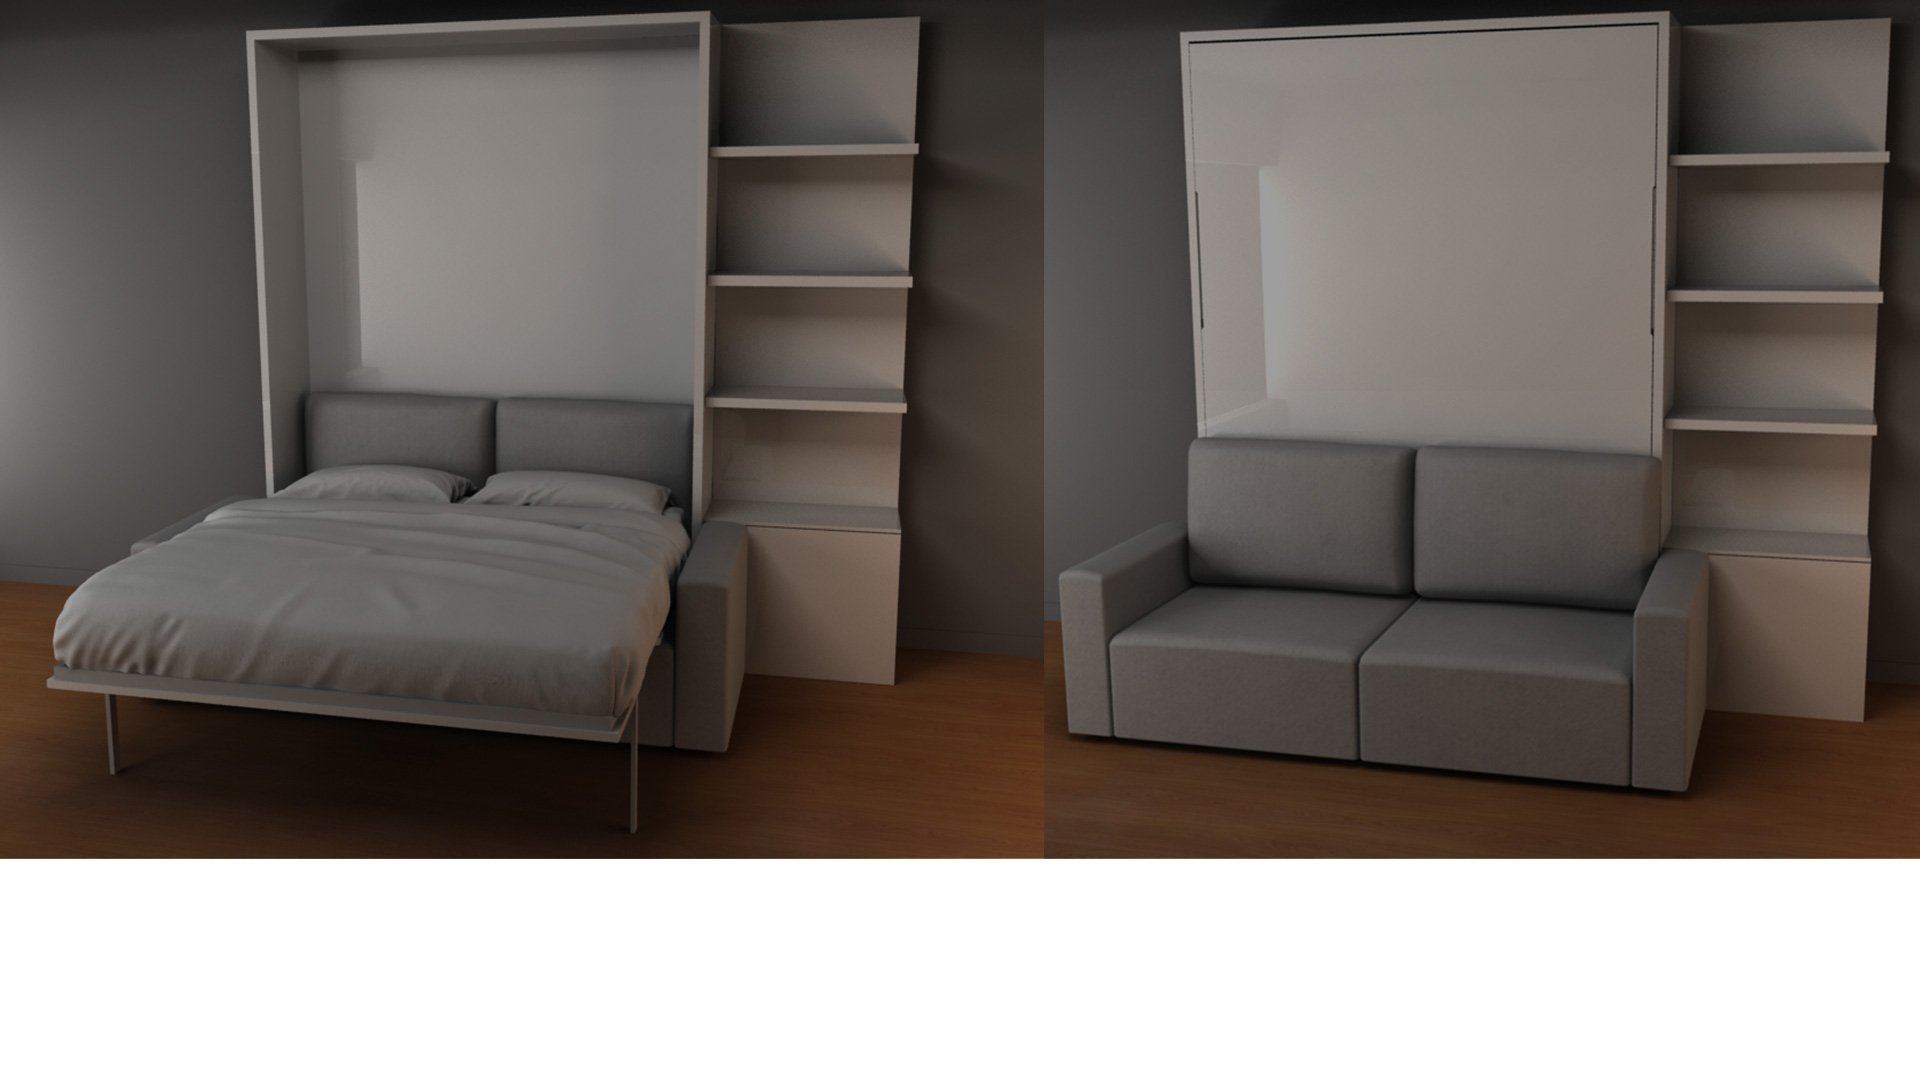 Wall bed sofas wall beds that transform into sofas Couch and bed